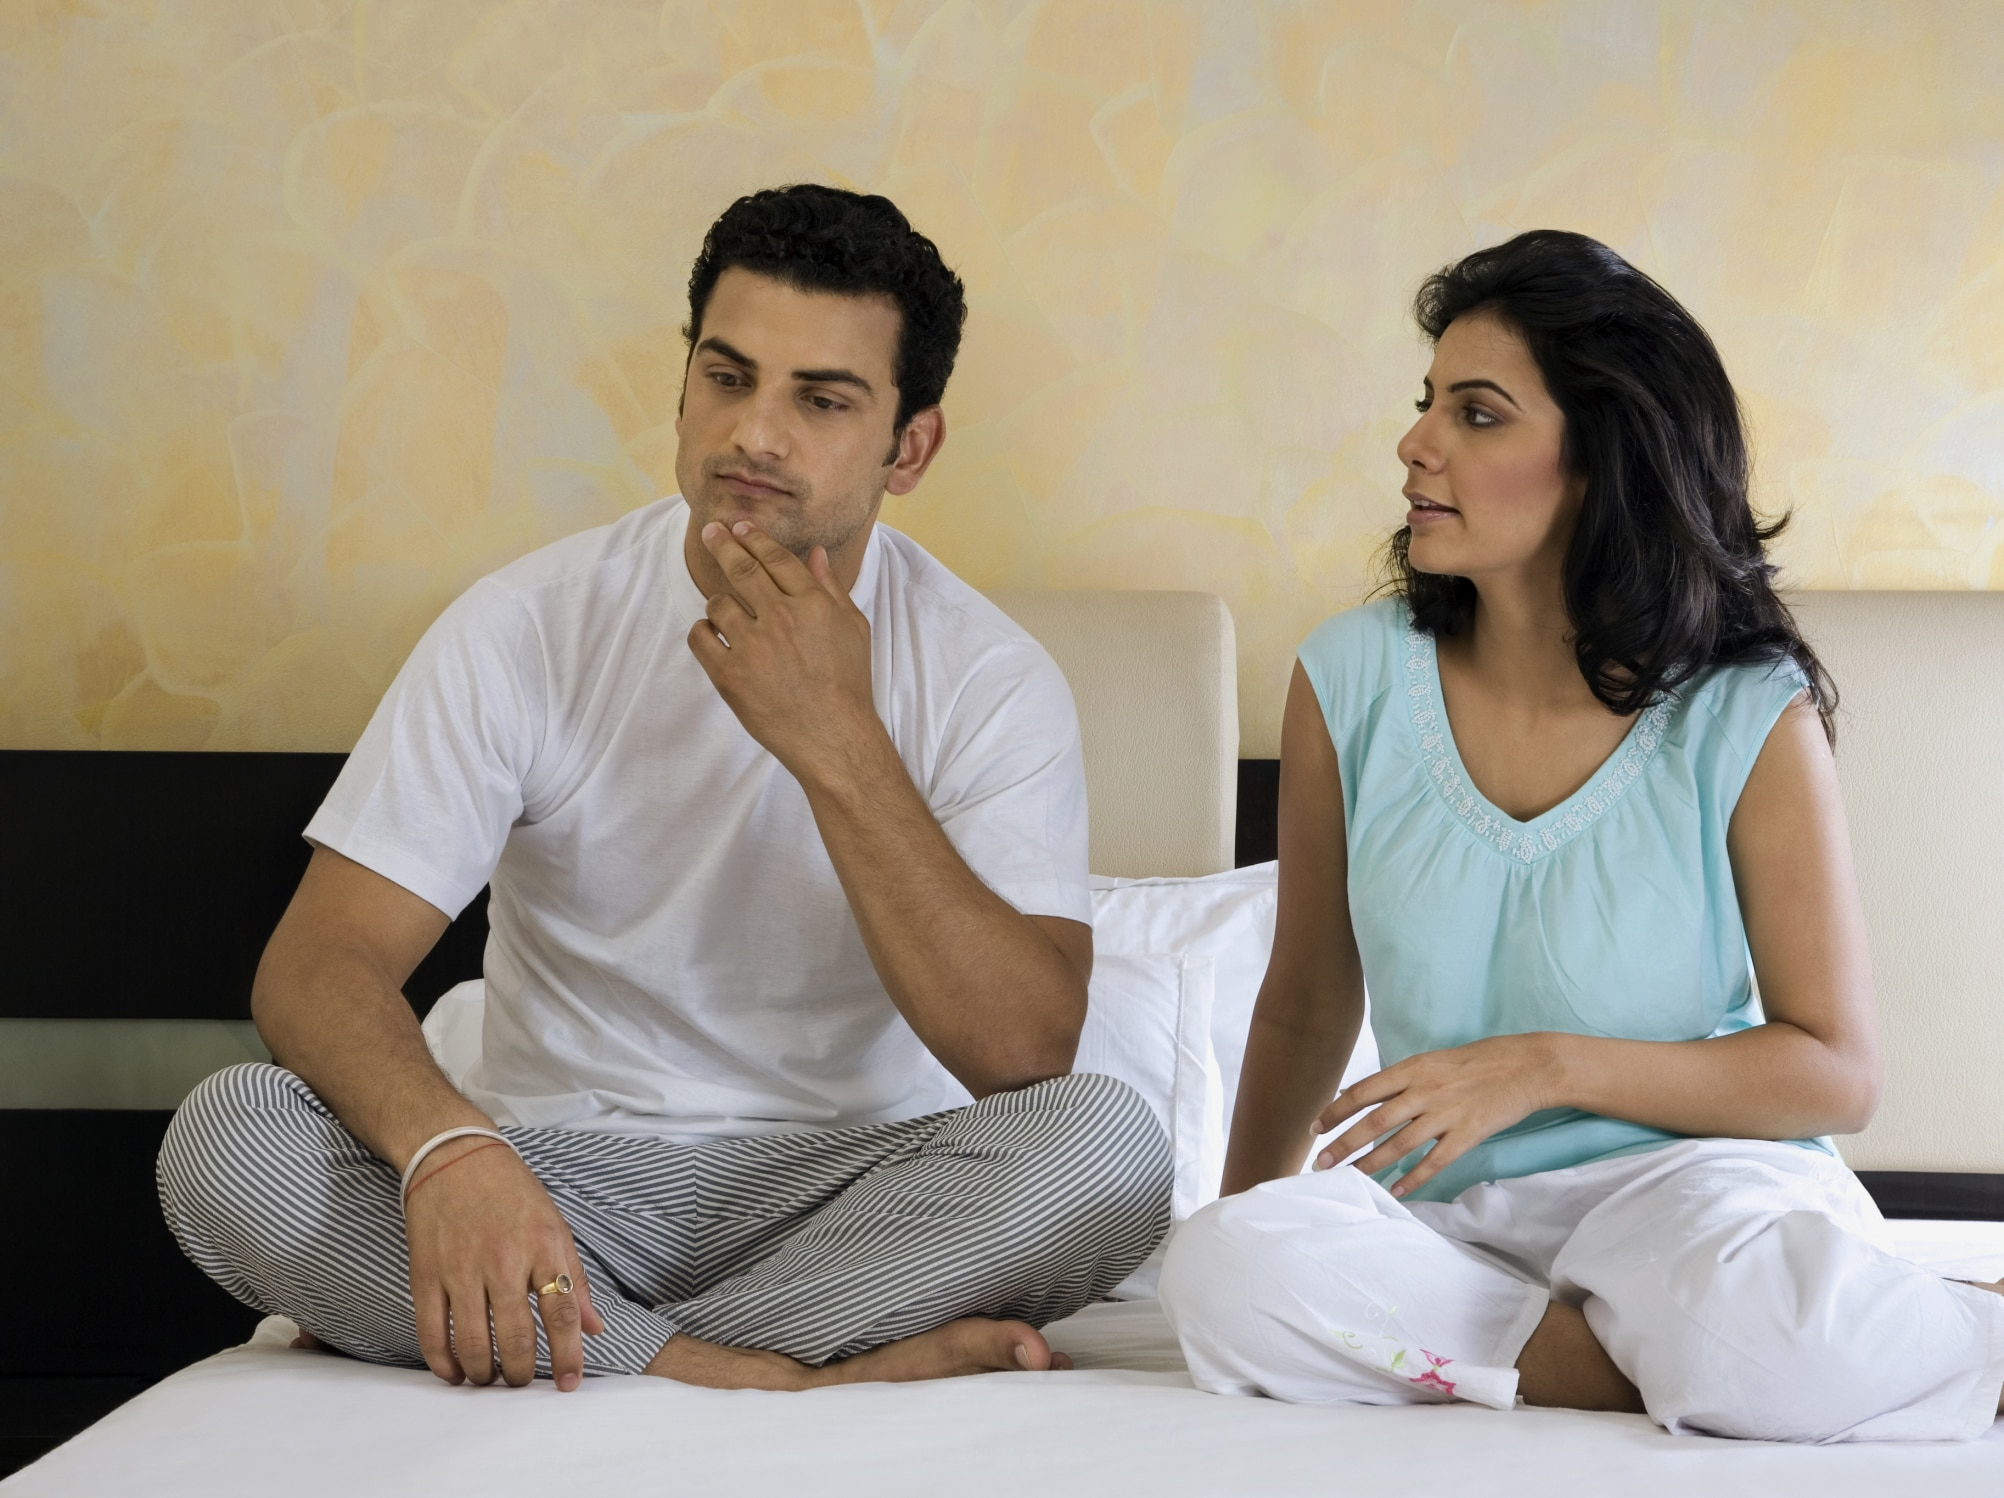 ThinkstockPhotos-135231854 | Save My Marriage System | Online Marriage Counseling Made Easy